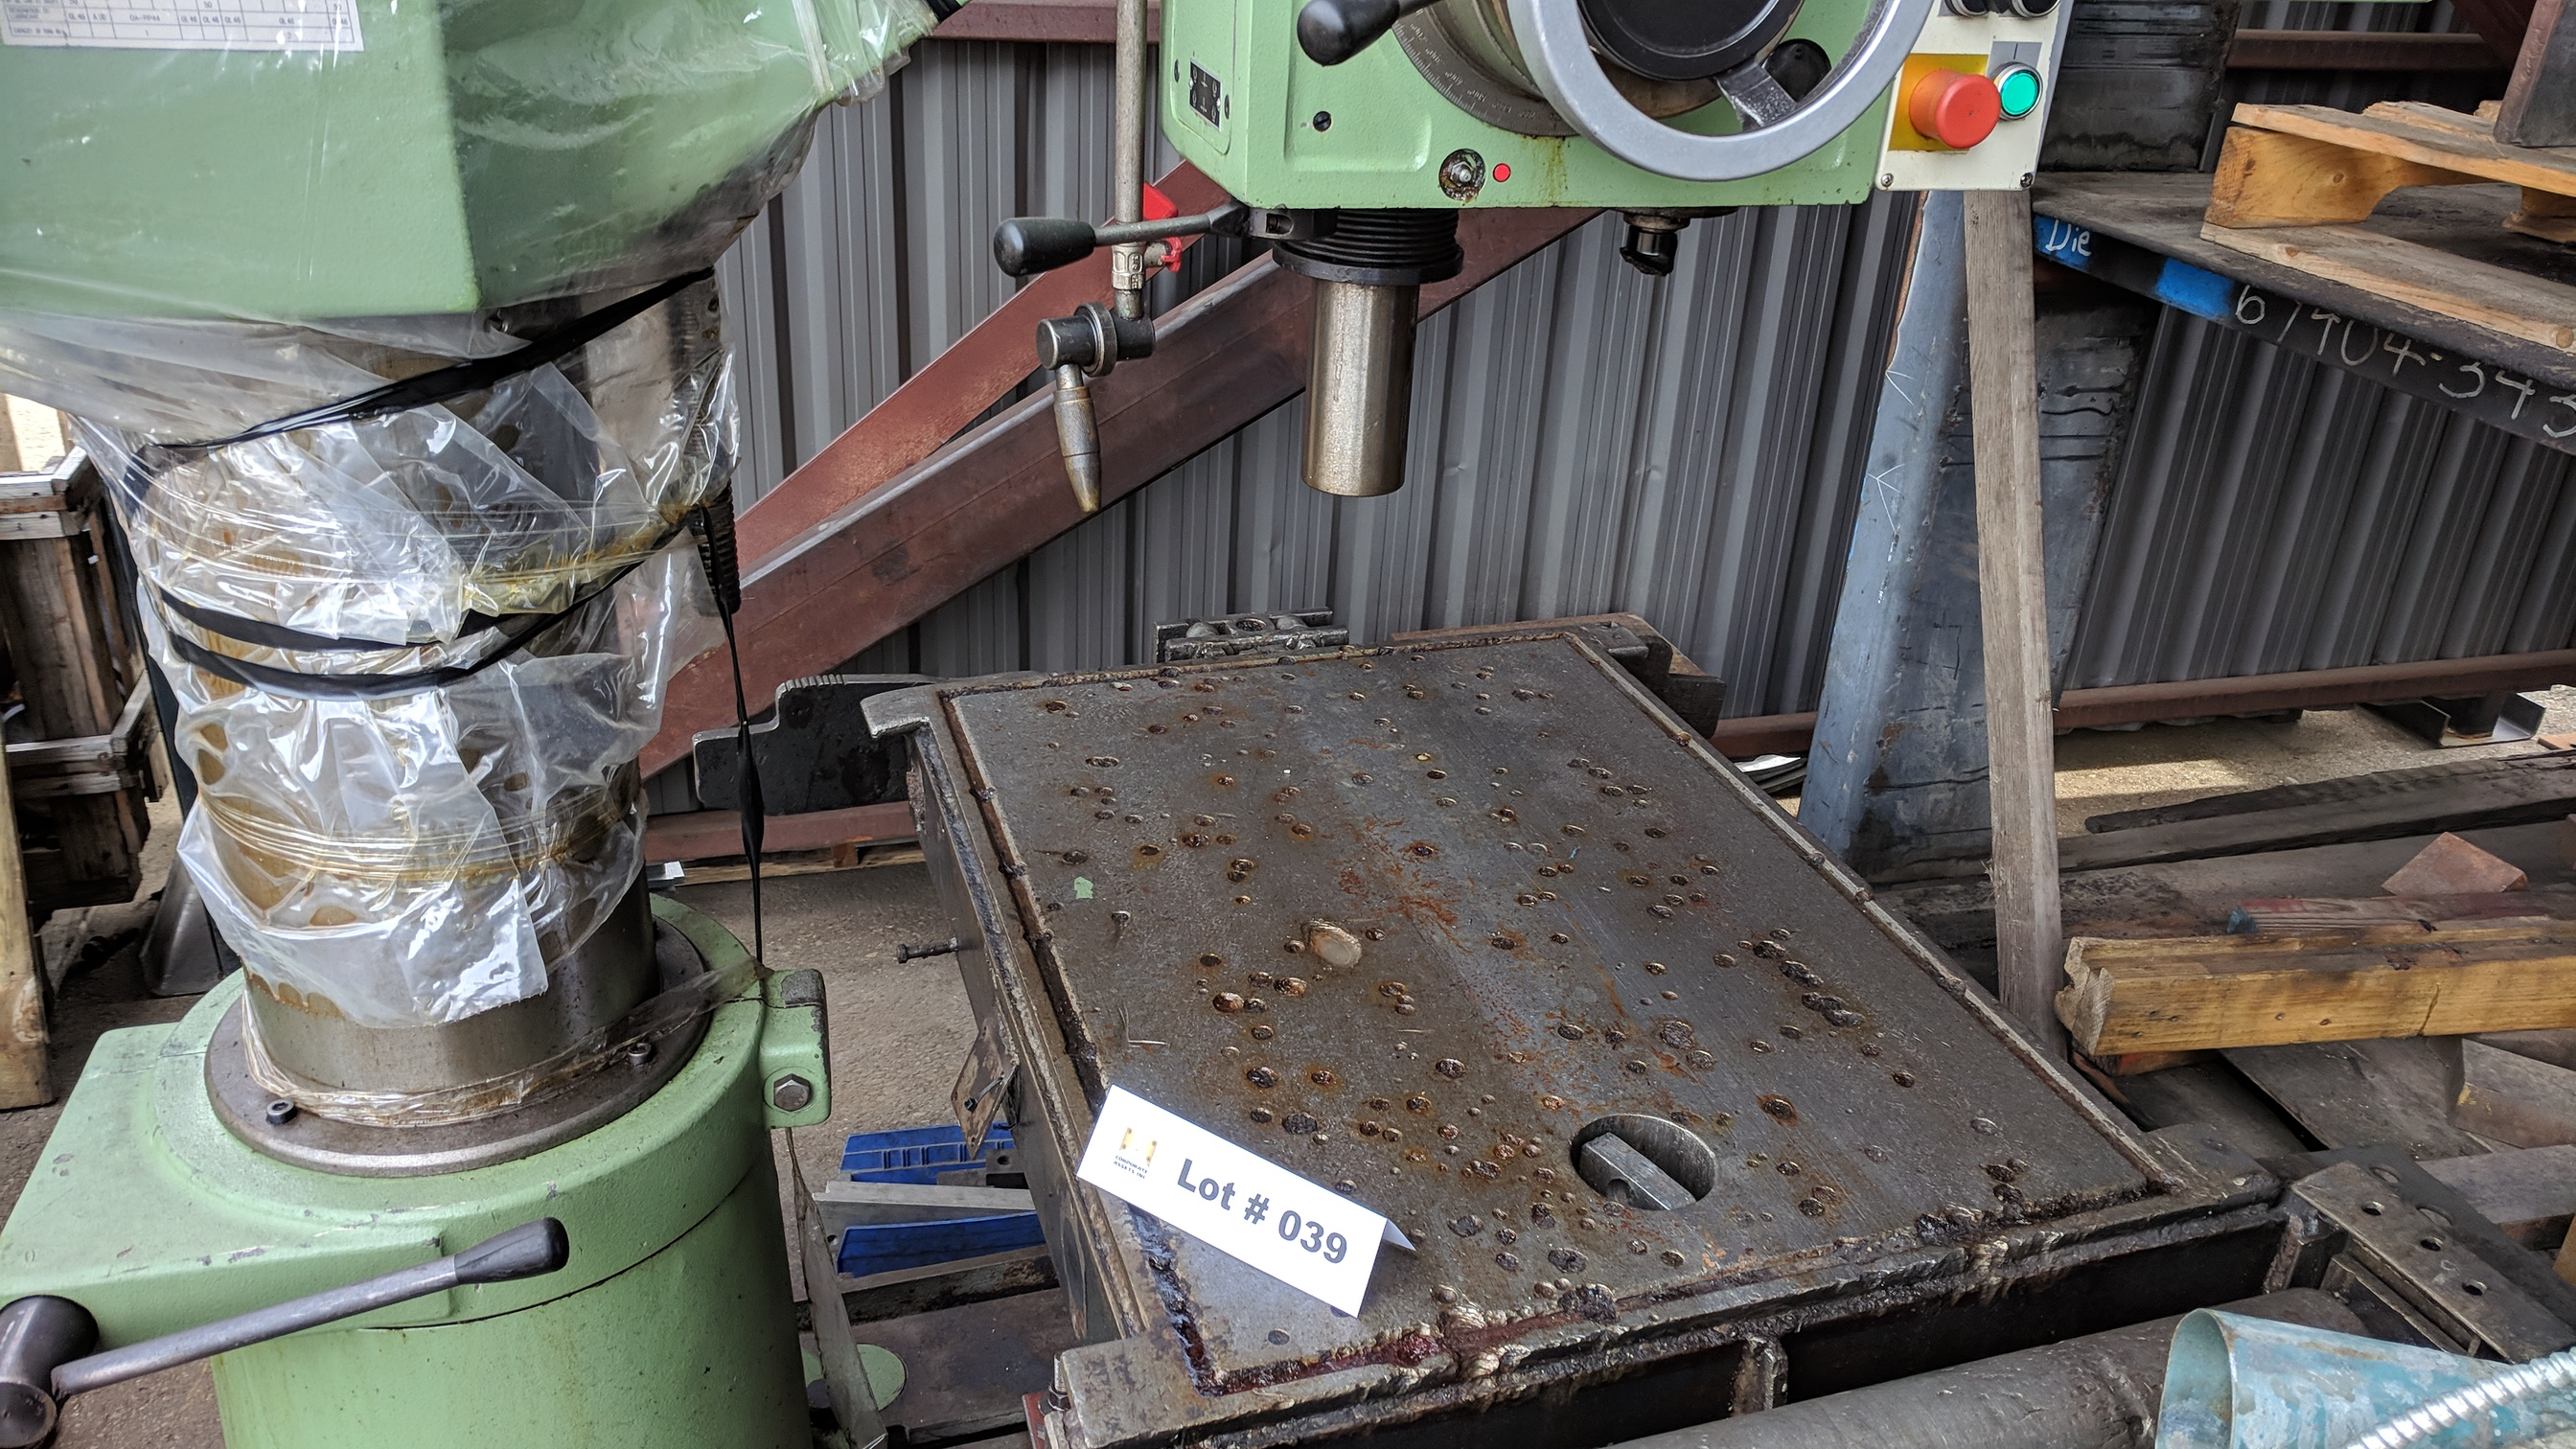 """MAS (1998) VO32 40"""" RADIAL ARM DRILL WITH 10"""" COLUMN, SPEEDS TO 2890 RPM, 3 HP, S/N 2663 (CI) - Image 5 of 7"""